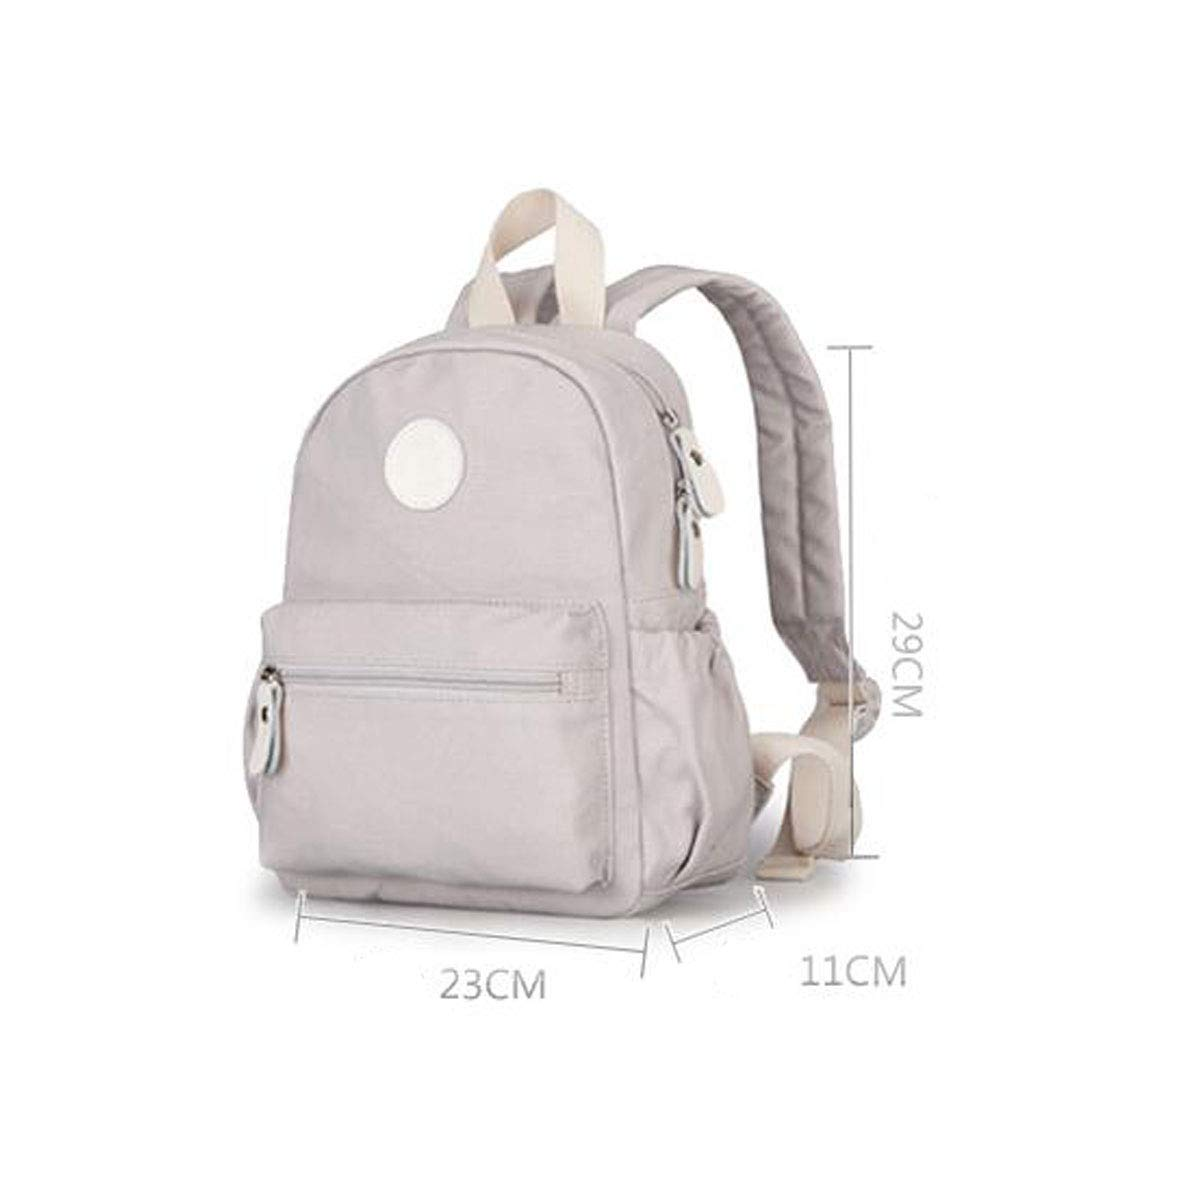 Wallet Grey Color : Gray Chenjinxiang01 Backpack for Women,College Style Fashion Casual Rucksack